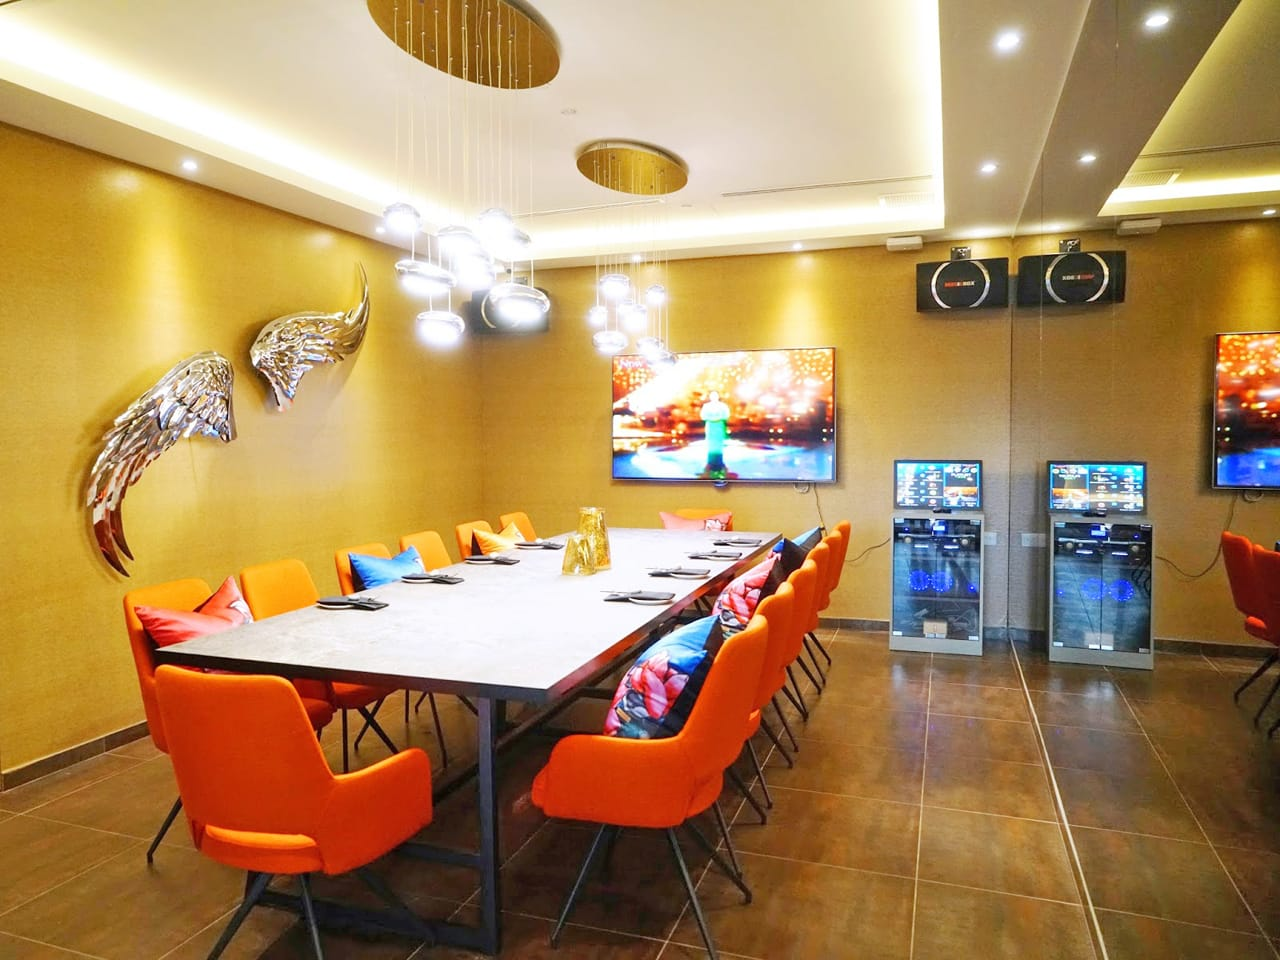 Blue Lotus Chinese Grill House - Tanjong Pagar | Product Seen: [Ford Armchair]